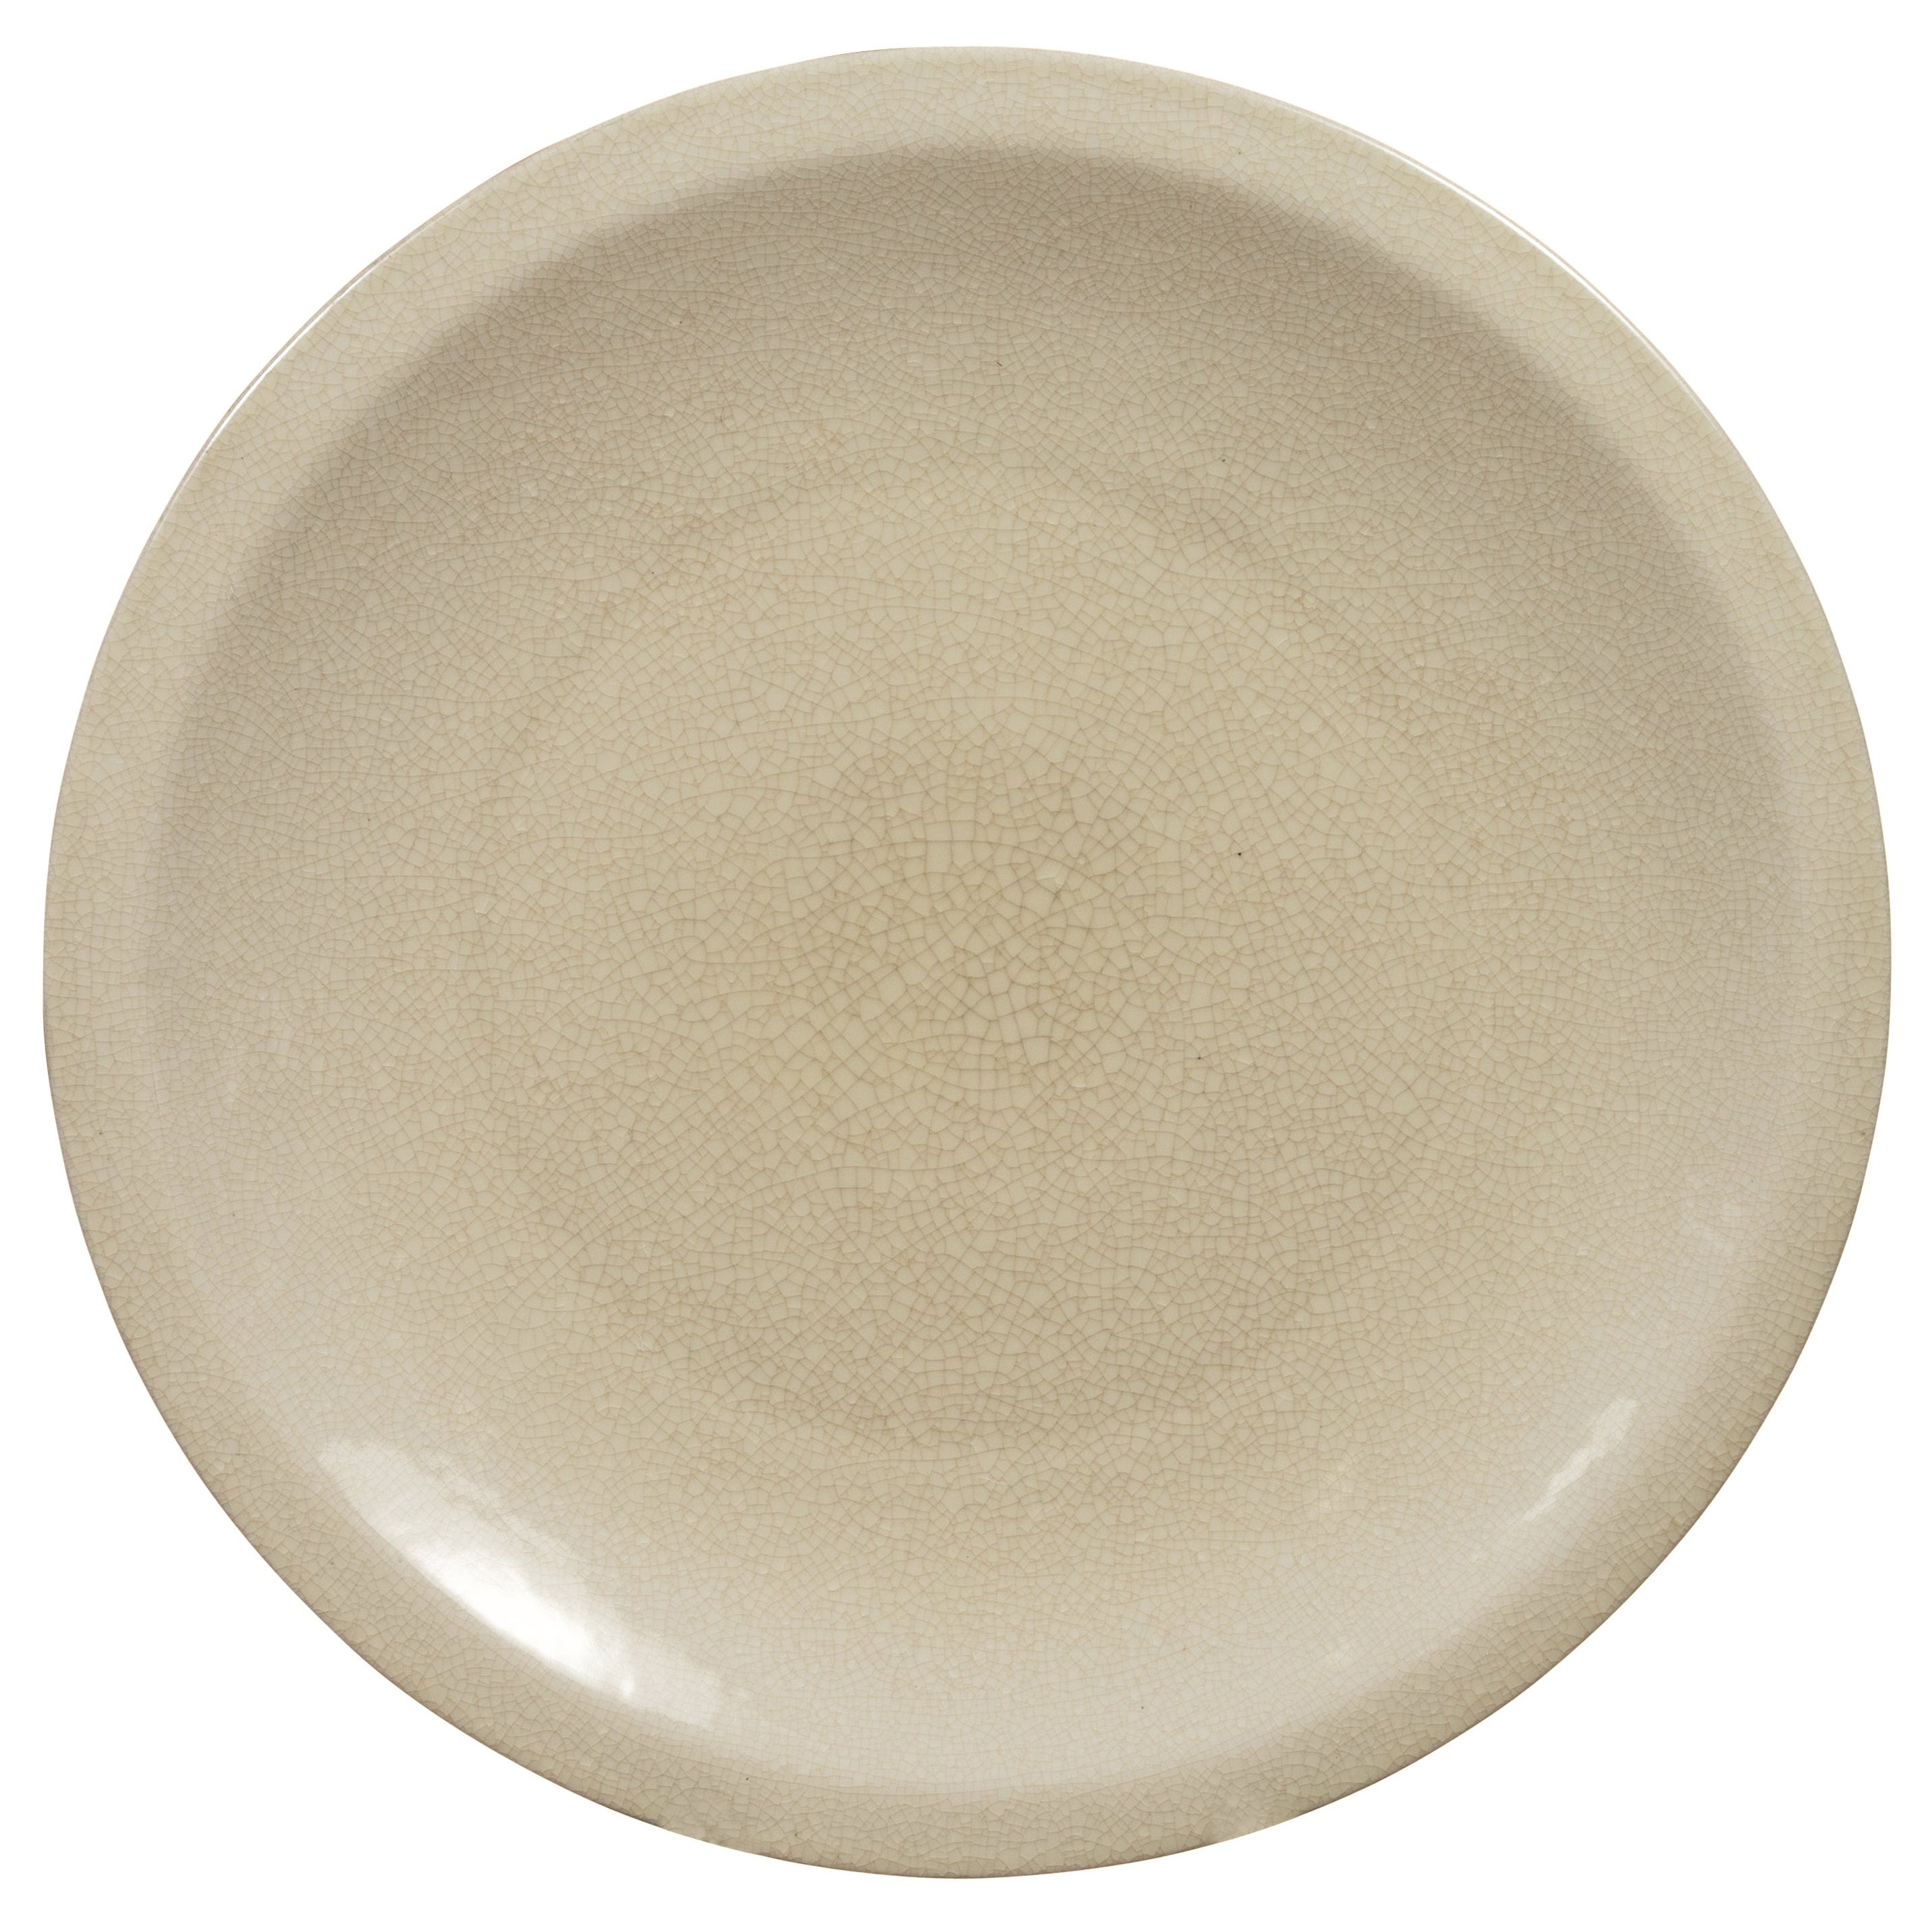 Vintage Chinese Beige Ceramic Charger Plate from the 1980s